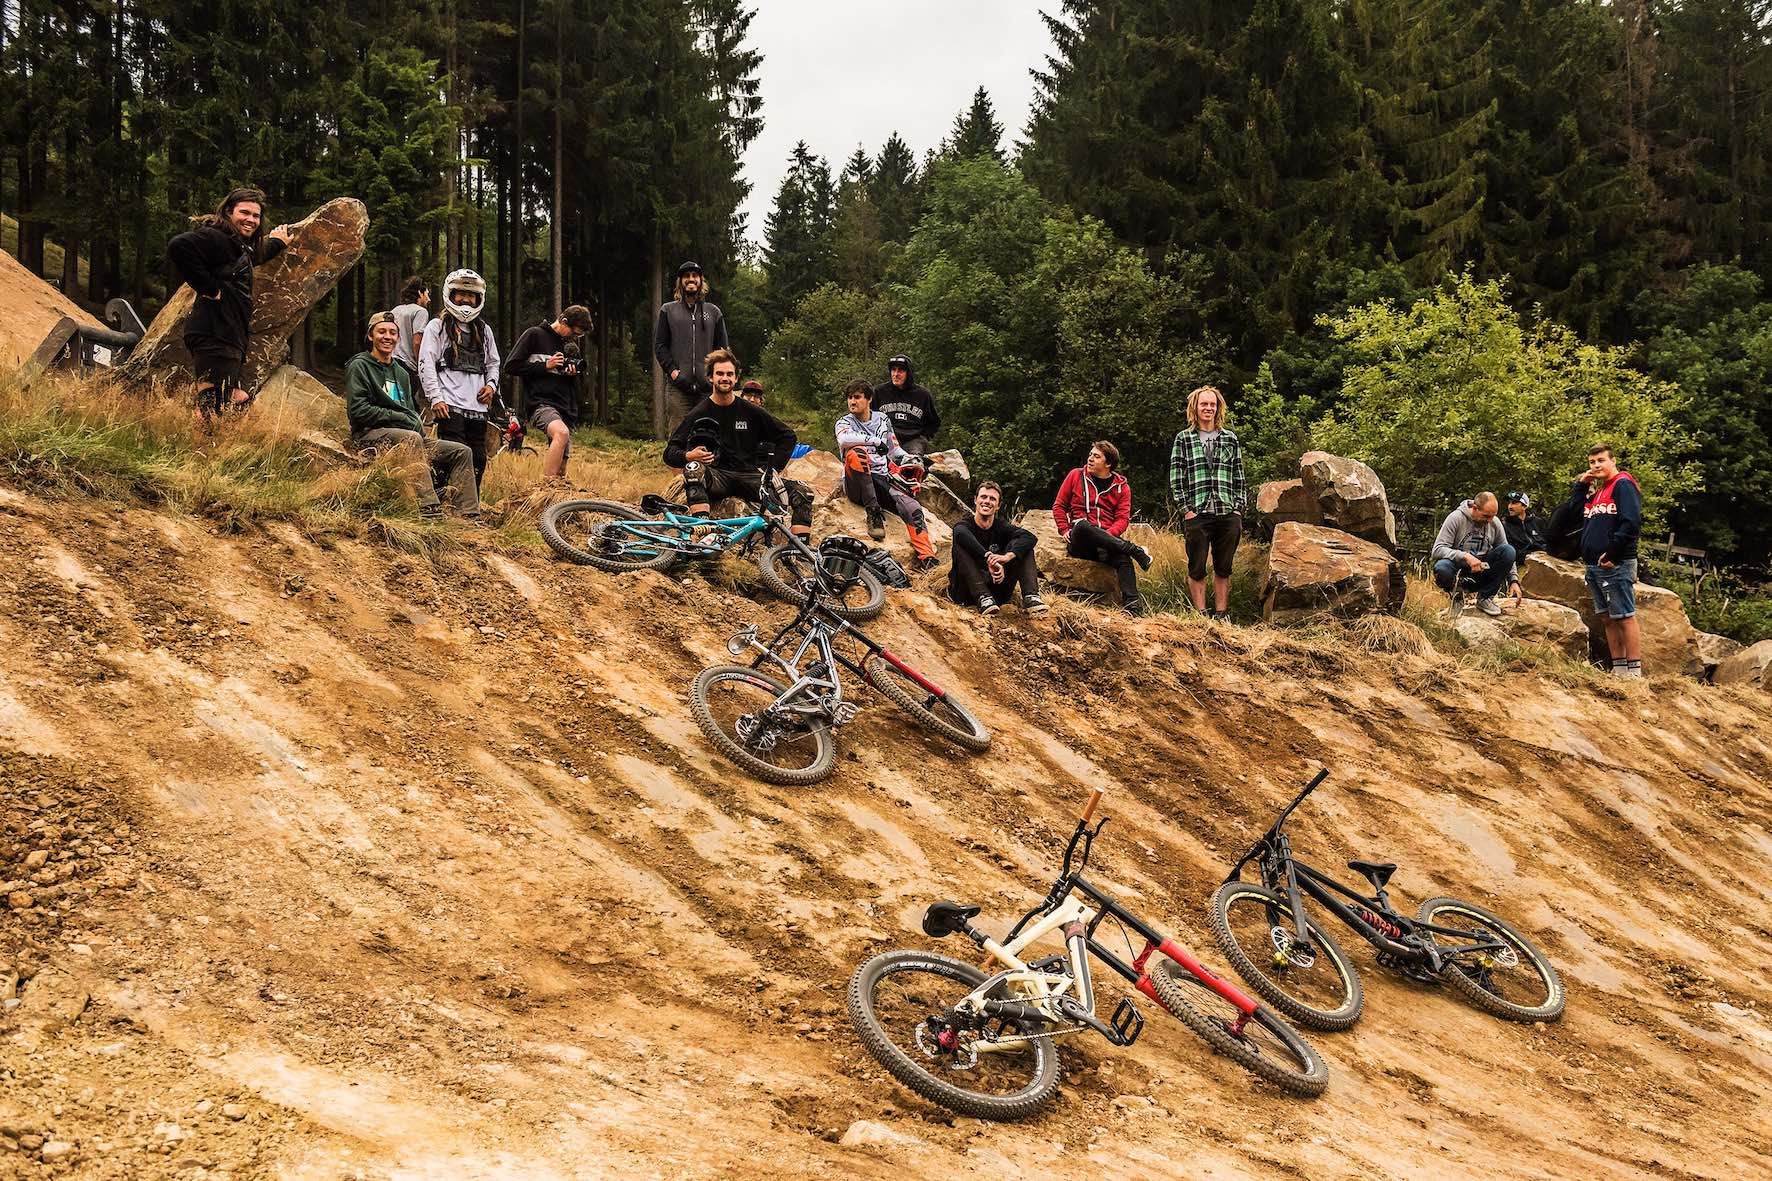 Freeride MTB riders preparing to ride the 2019 Loosefest XL Course